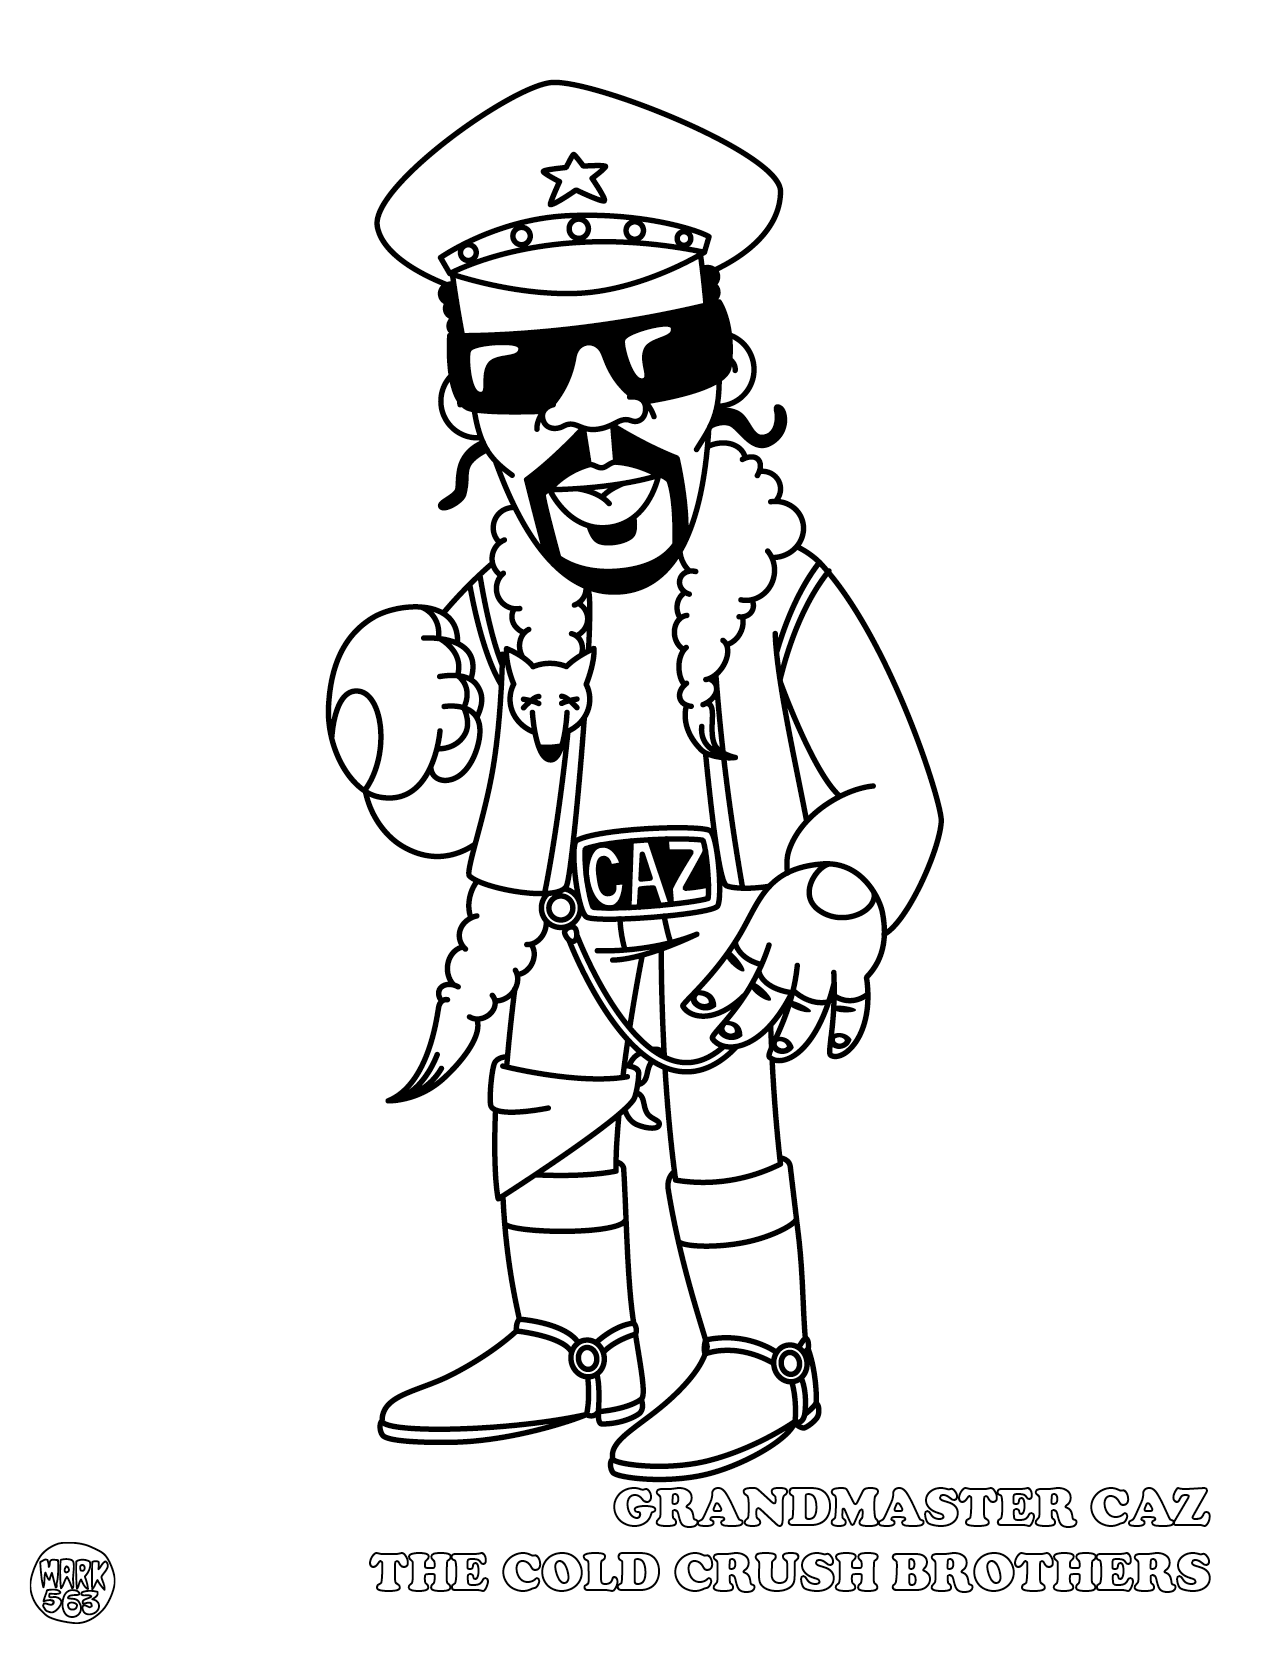 coloring sheet graffiti coloring pages hip hop coloring book dokument press sheet coloring pages coloring graffiti